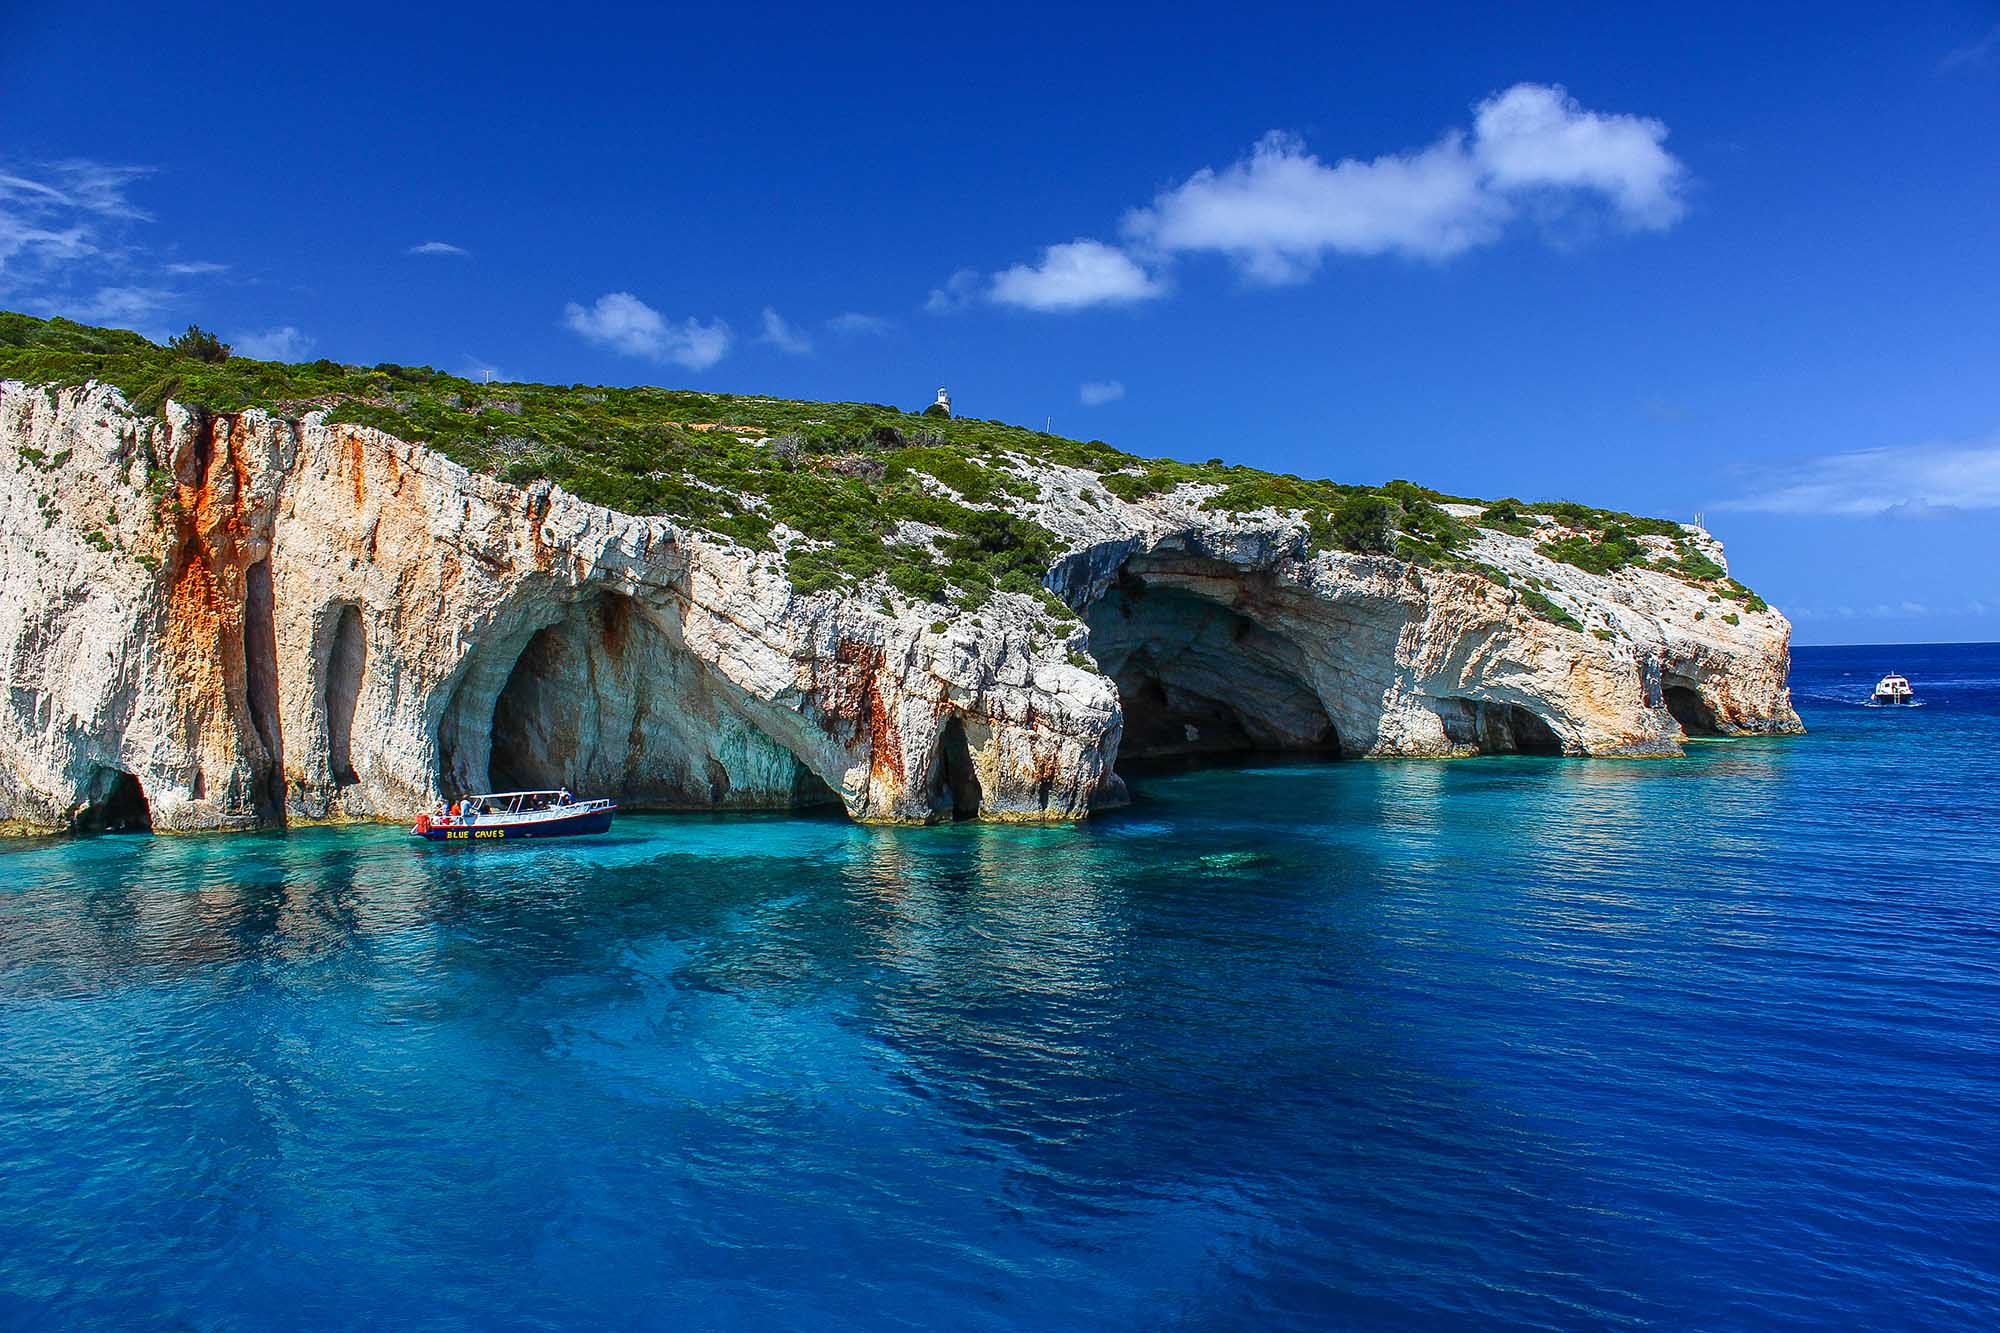 Blue Caves - Zakynthos Island, Greece - Photography Artwork